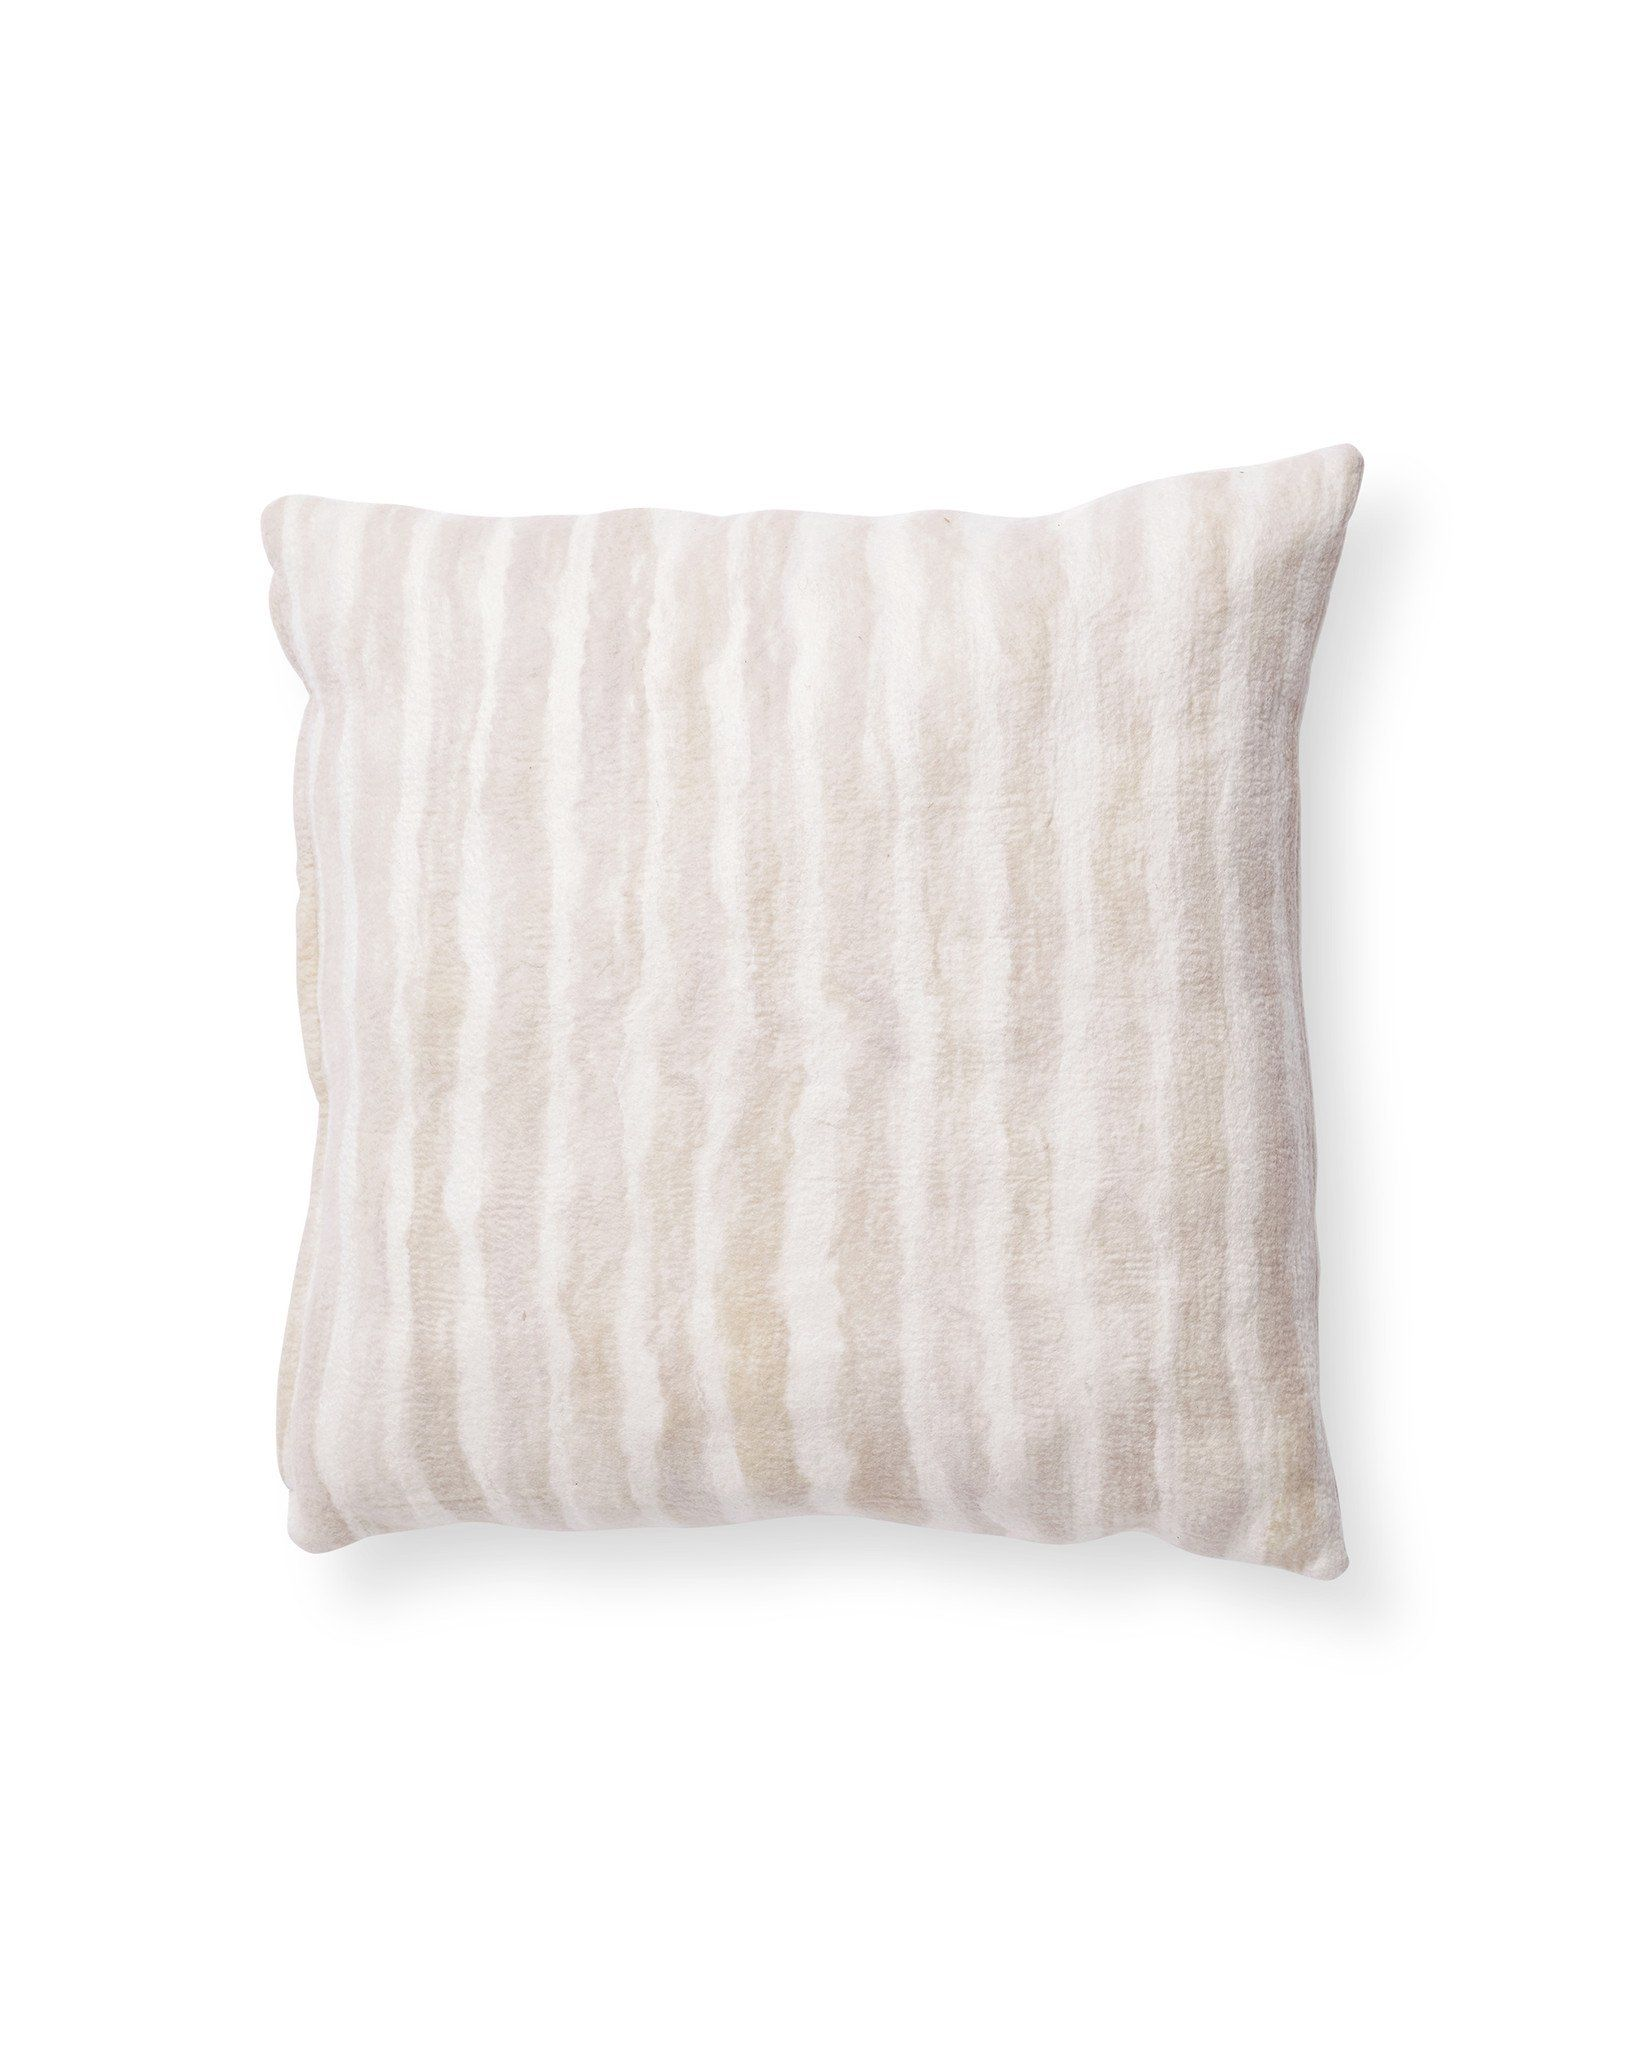 max sofa throwllows throw decorative at accesories toss ideas decorating new decor and navy for lumbar target magnificent decorate orange peach couch coral throws gold accent pillows pillow accents rustic teal